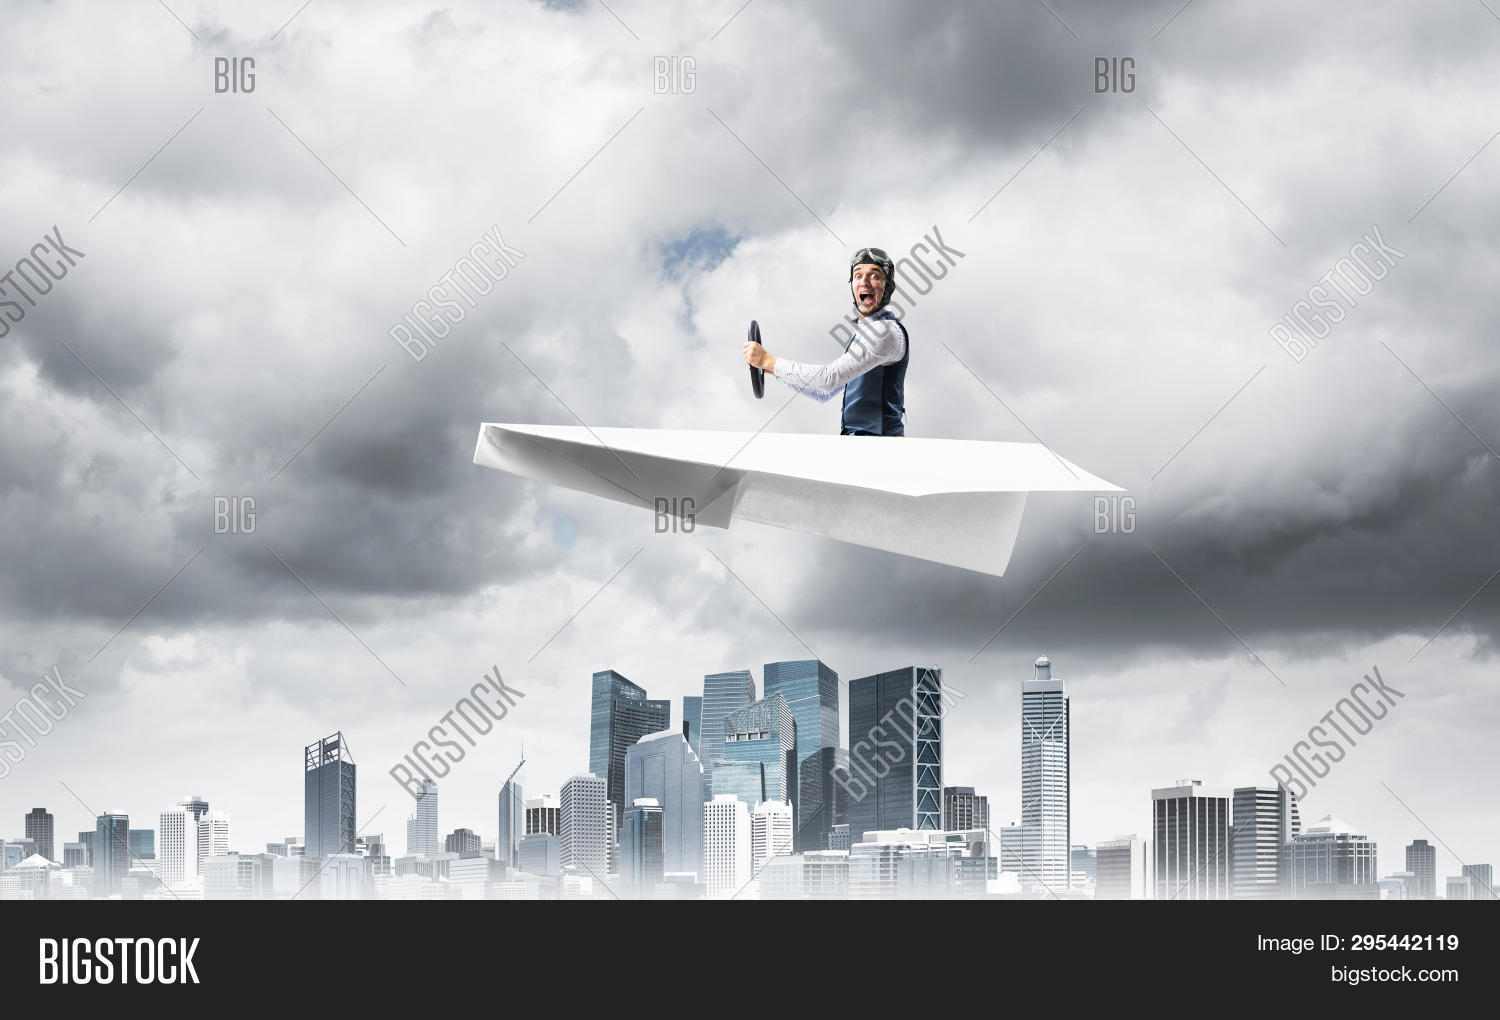 aerial,air,aircraft,airplane,aviator,building,business,businessman,cloudscape,concept,course,crisis,dark,direction,downtown,dramatic,driving,fly,funny,goggles,hat,helmet,hurricane,leader,leadership,leather,man,management,media,megalopolis,metropolis,motivation,outdoors,panorama,paper,people,person,pilot,plane,risk,sky,skyscape,skyscraper,small,storm,urban